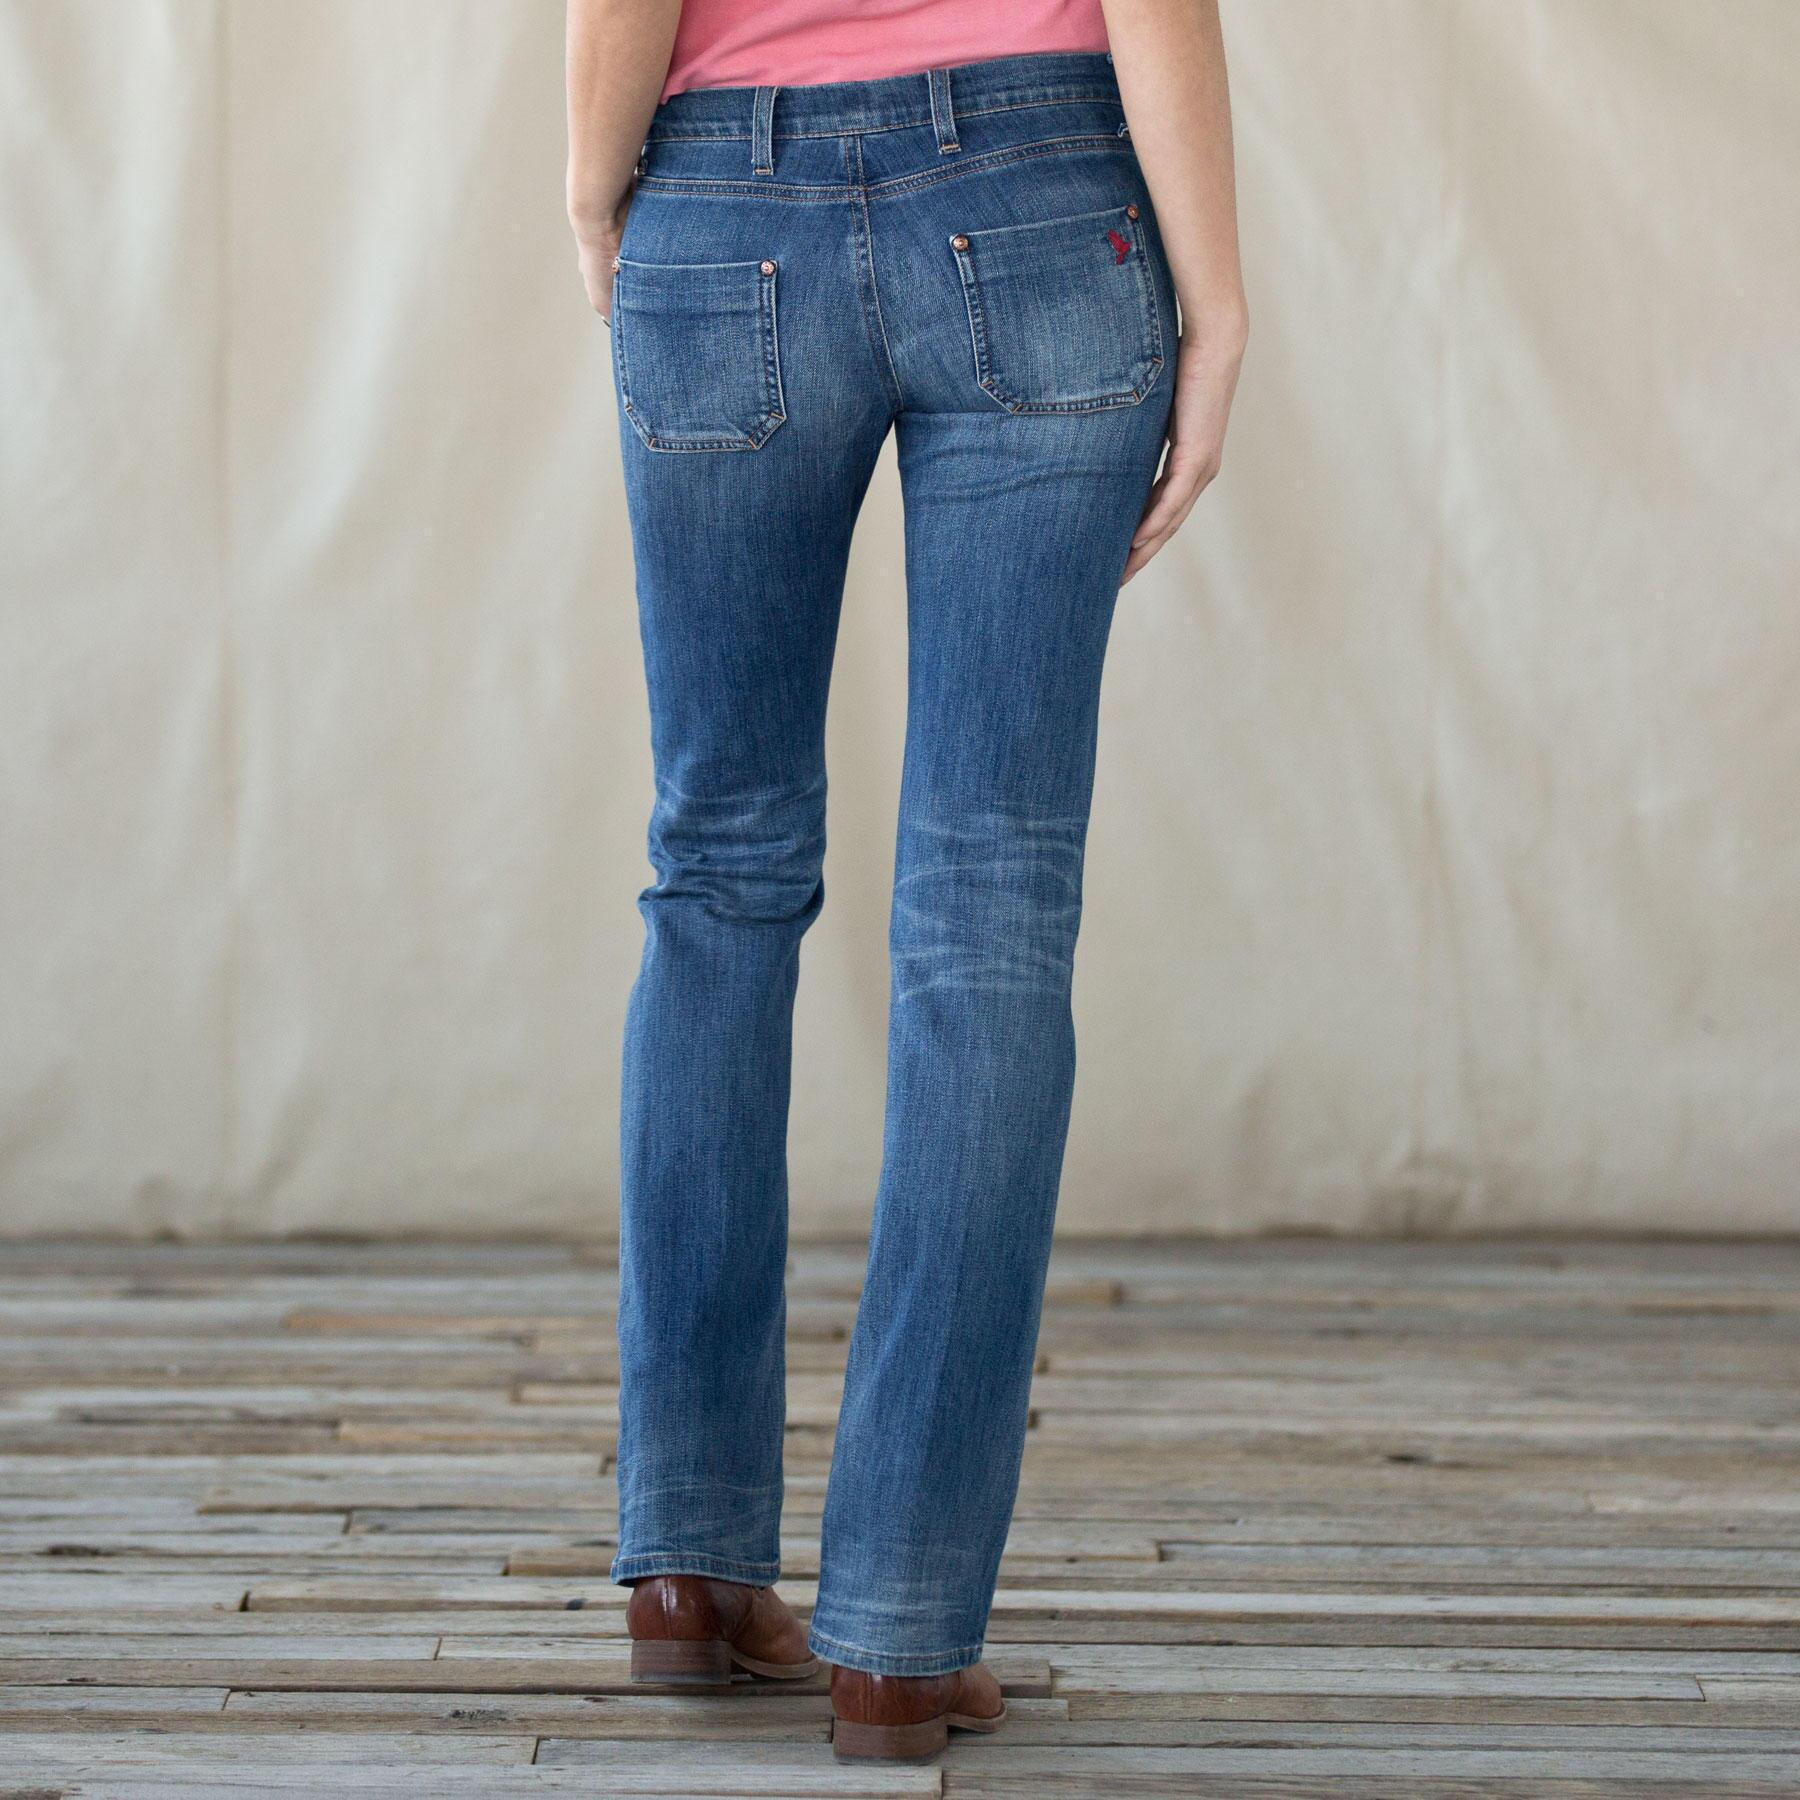 MIH LONDON JEANS: View 2